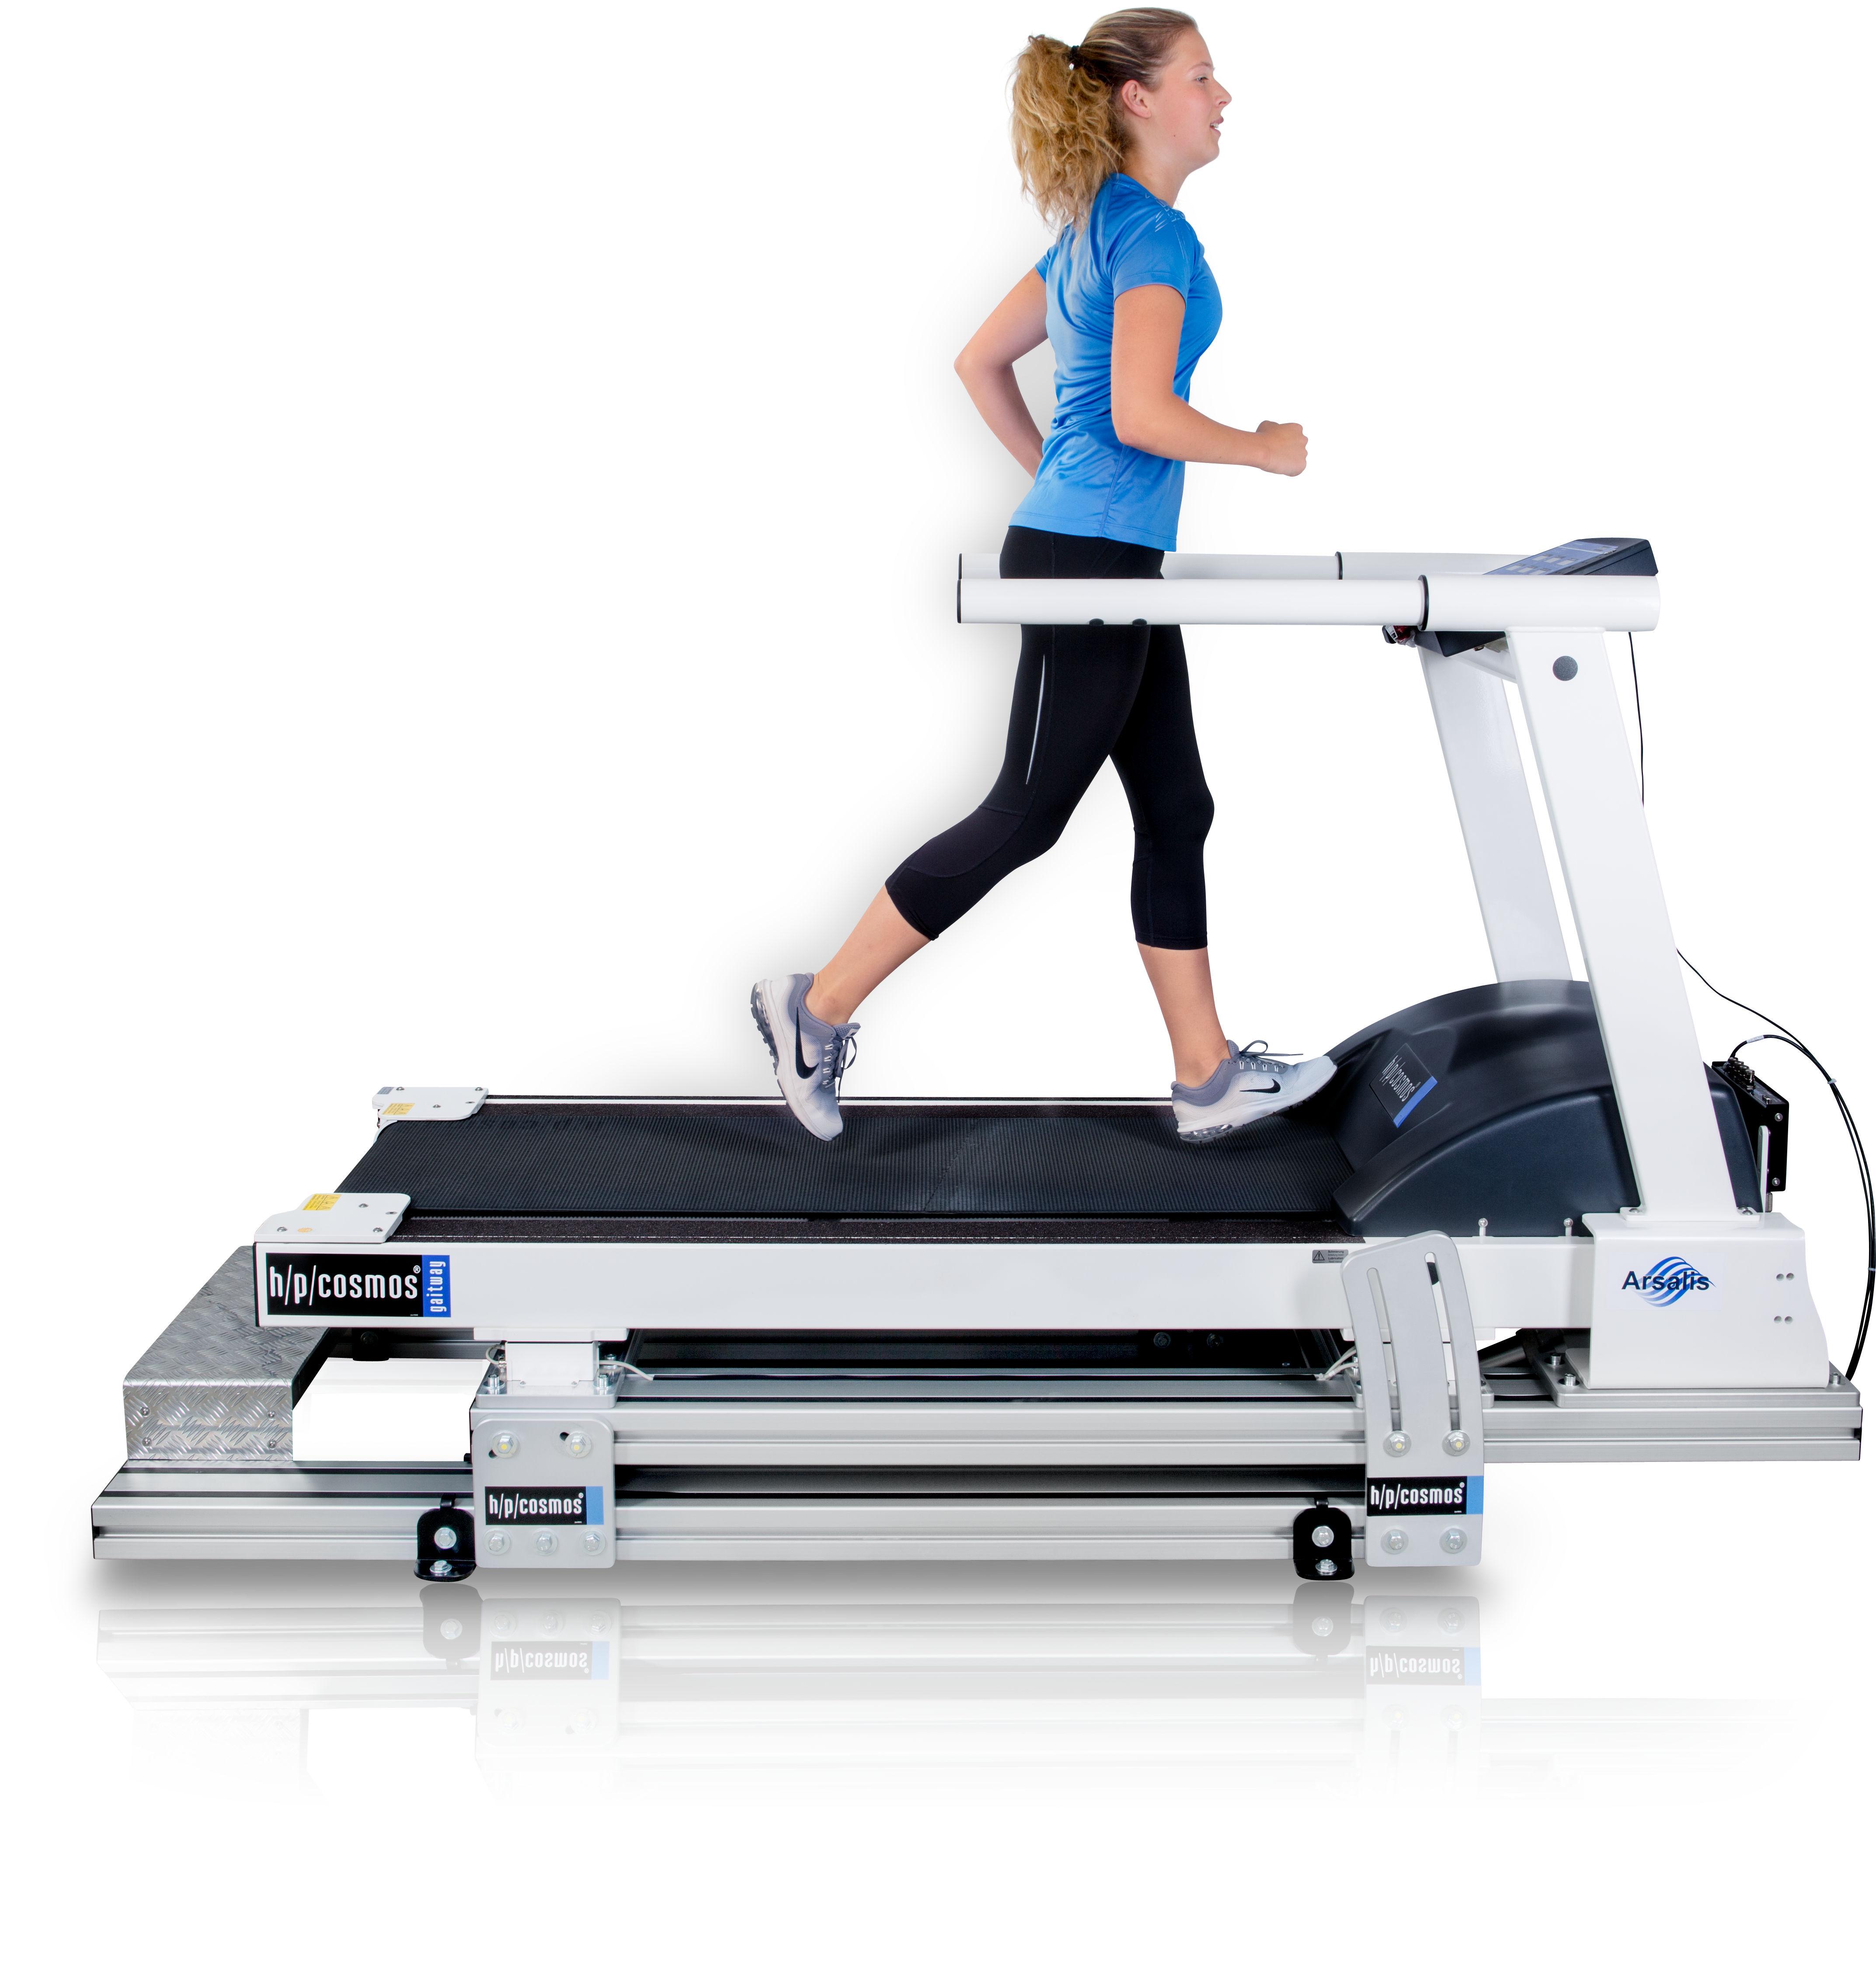 Exercise Equipment Step Platform For Sports and amp; Fitness with Foot-support